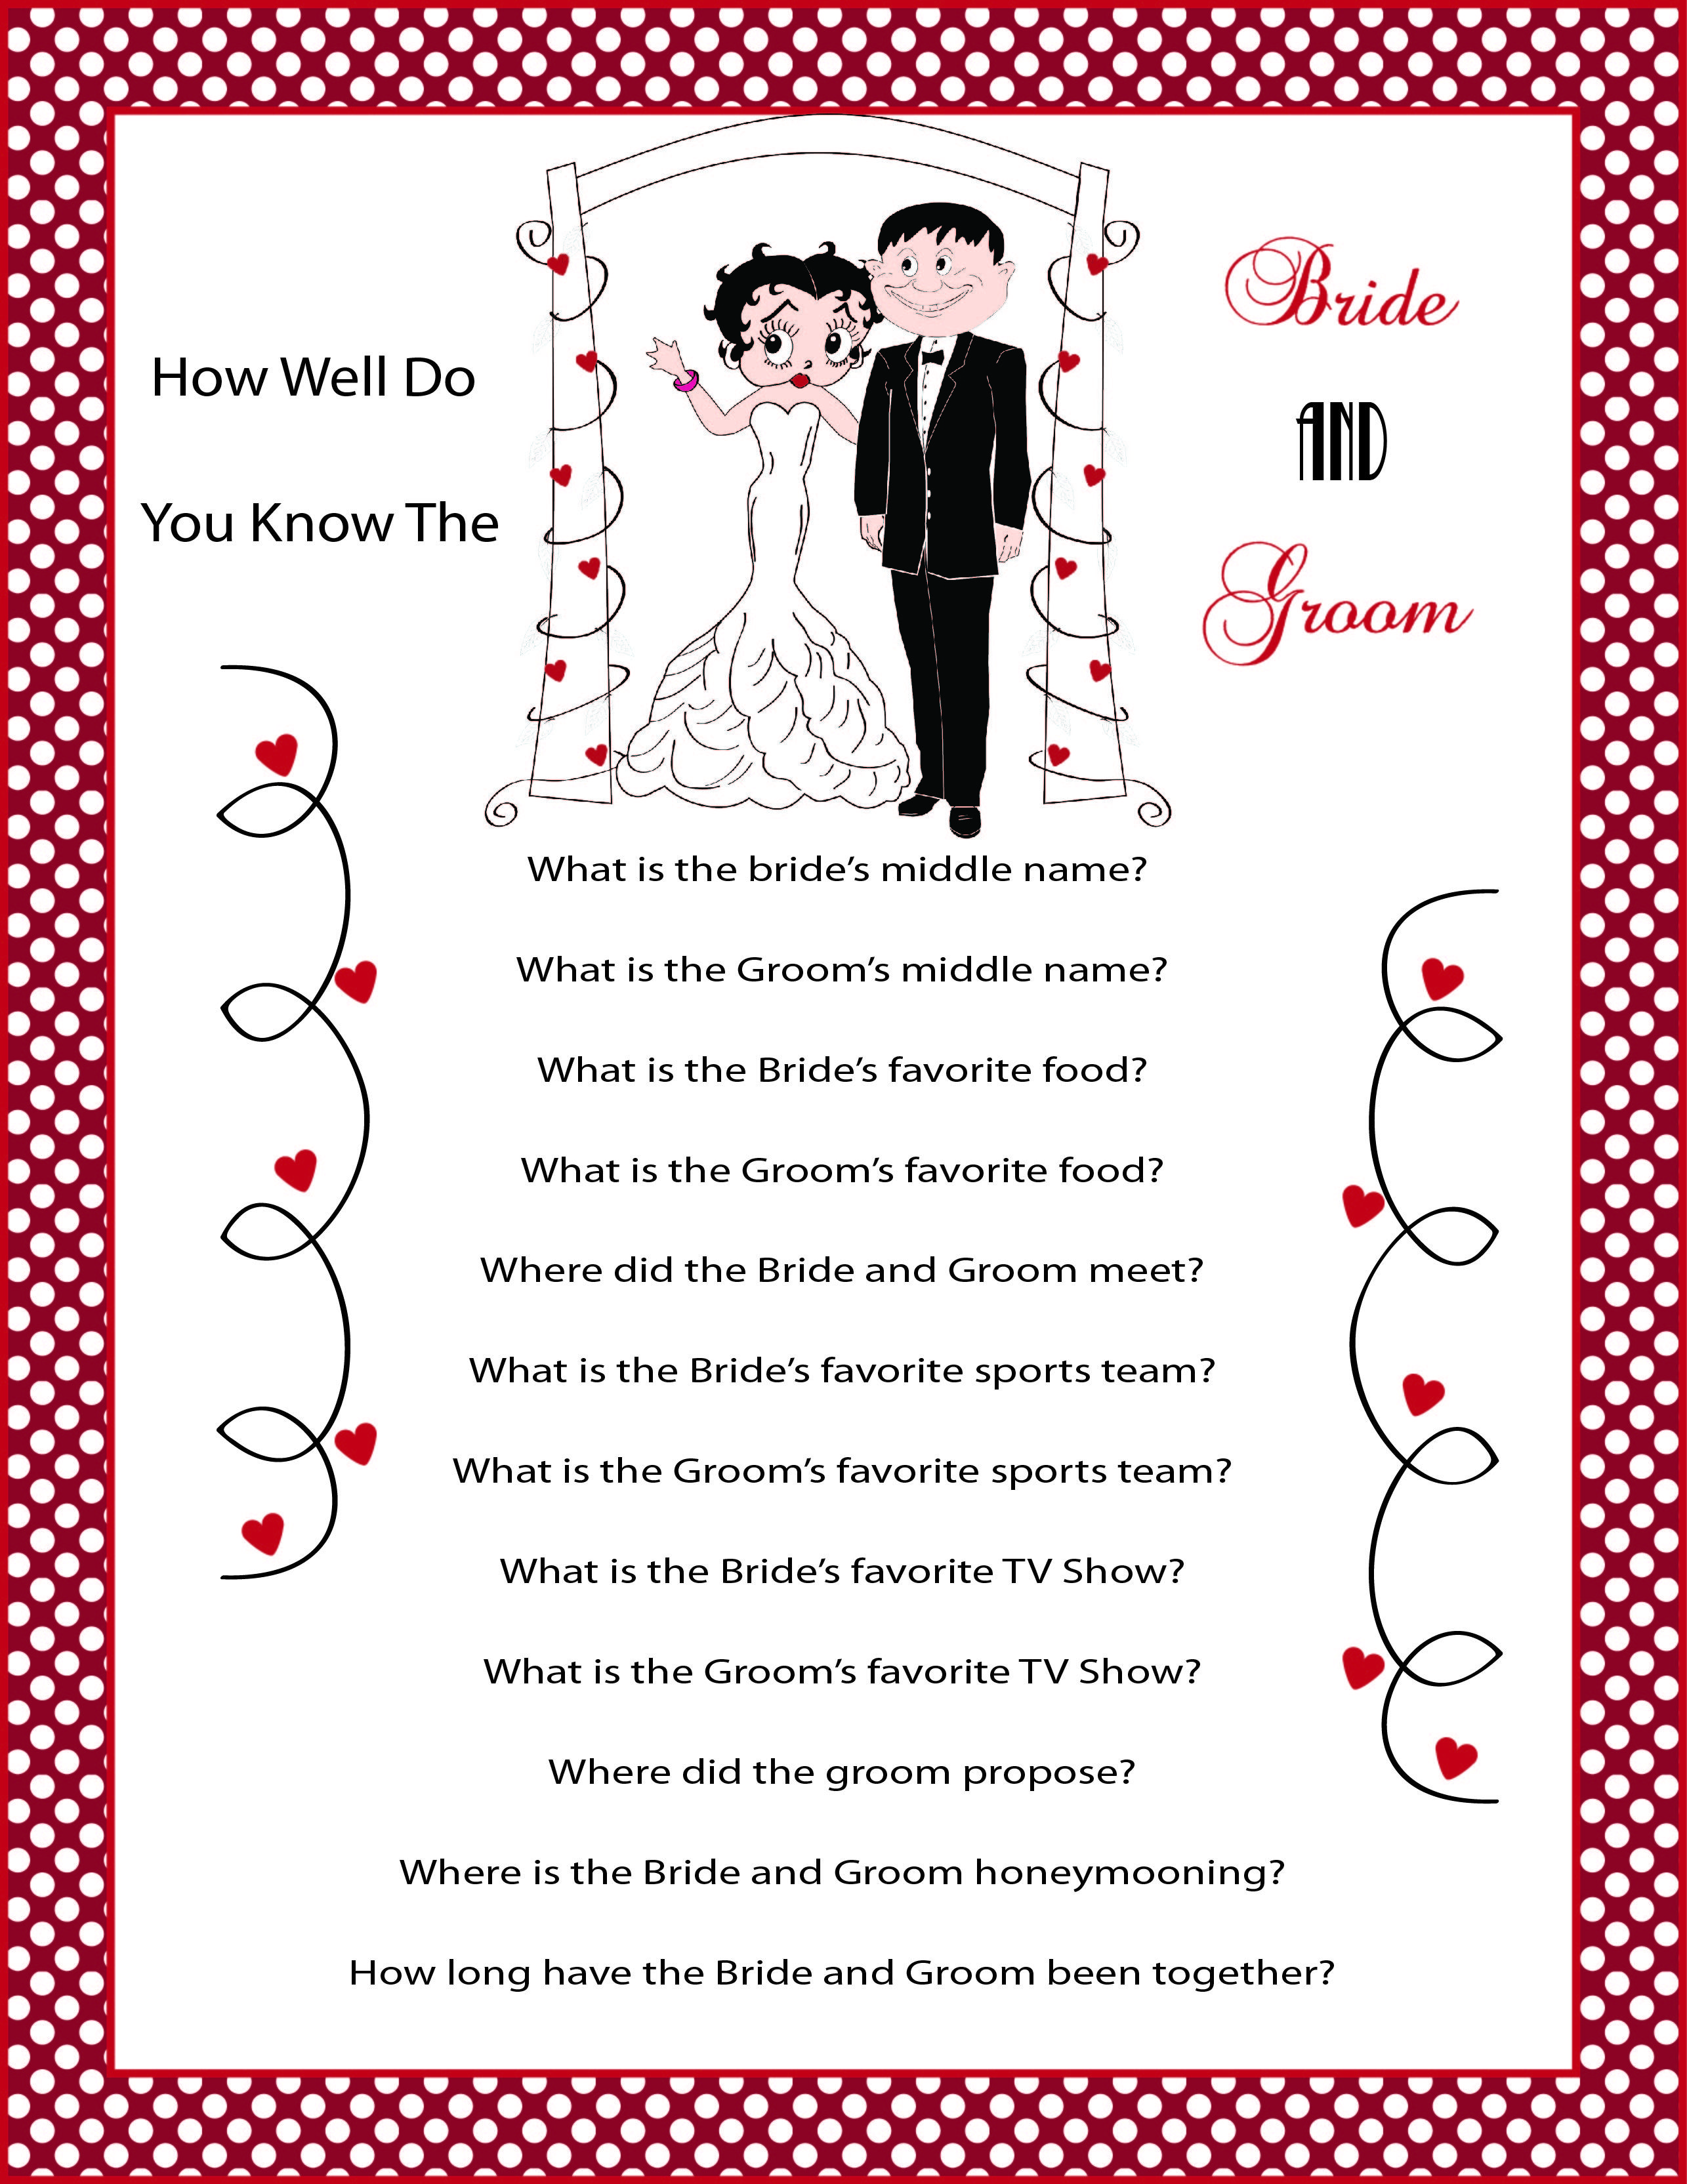 Betty boop and her man fun bridal or wedding shower game wedding